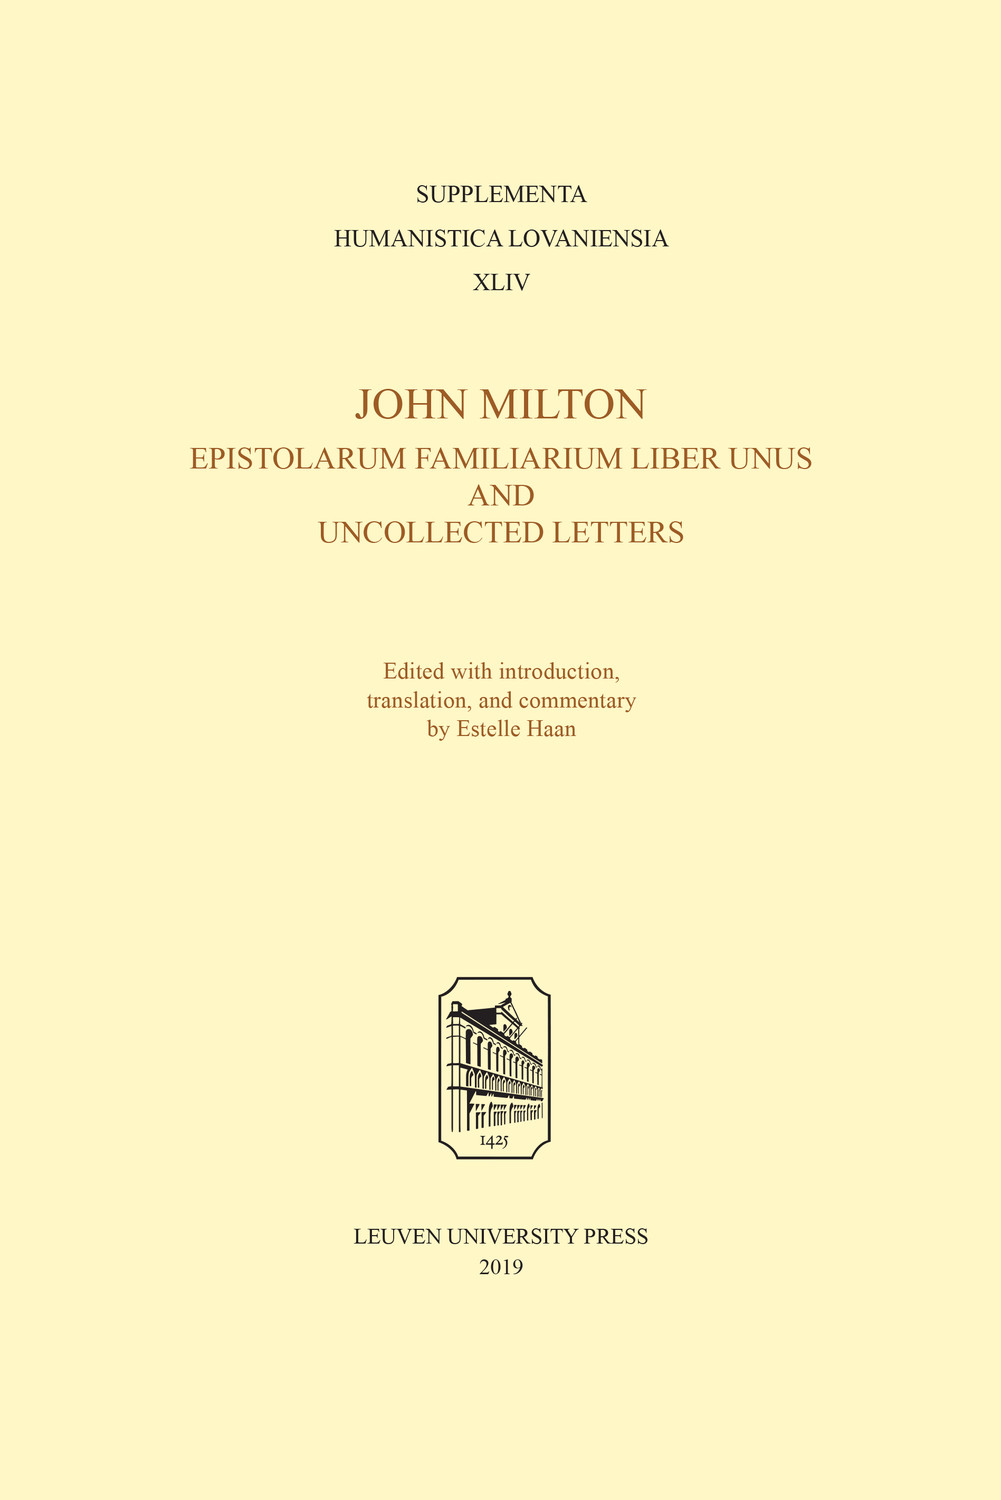 John Milton, Epistolarum Familiarium Liber Unus and Uncollected Letters